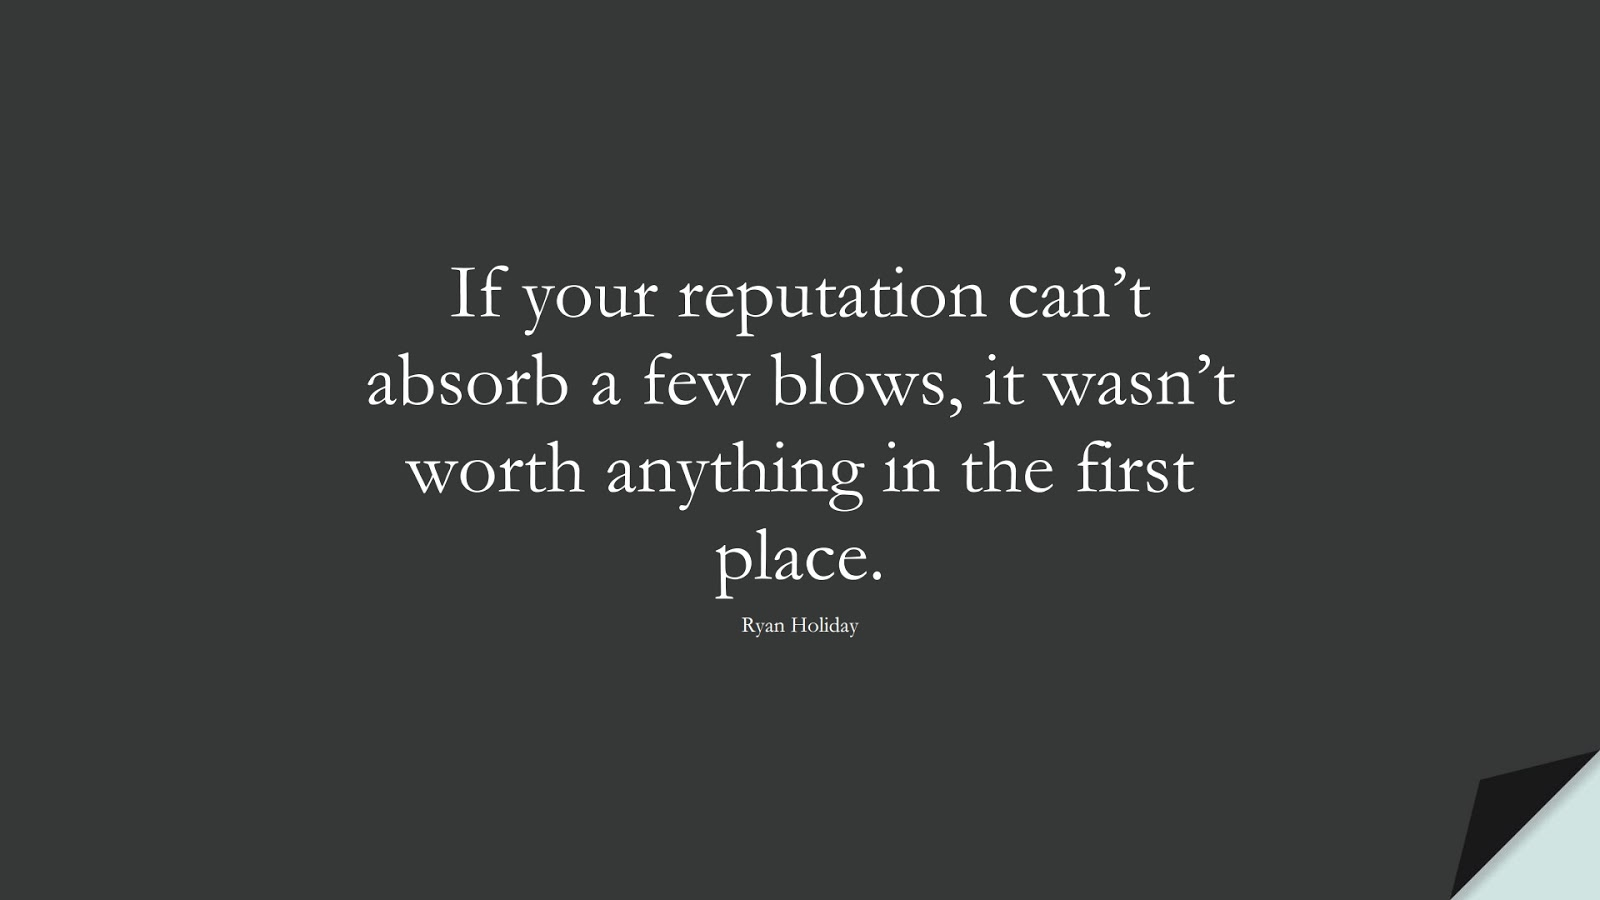 If your reputation can't absorb a few blows, it wasn't worth anything in the first place. (Ryan Holiday);  #CharacterQuotes